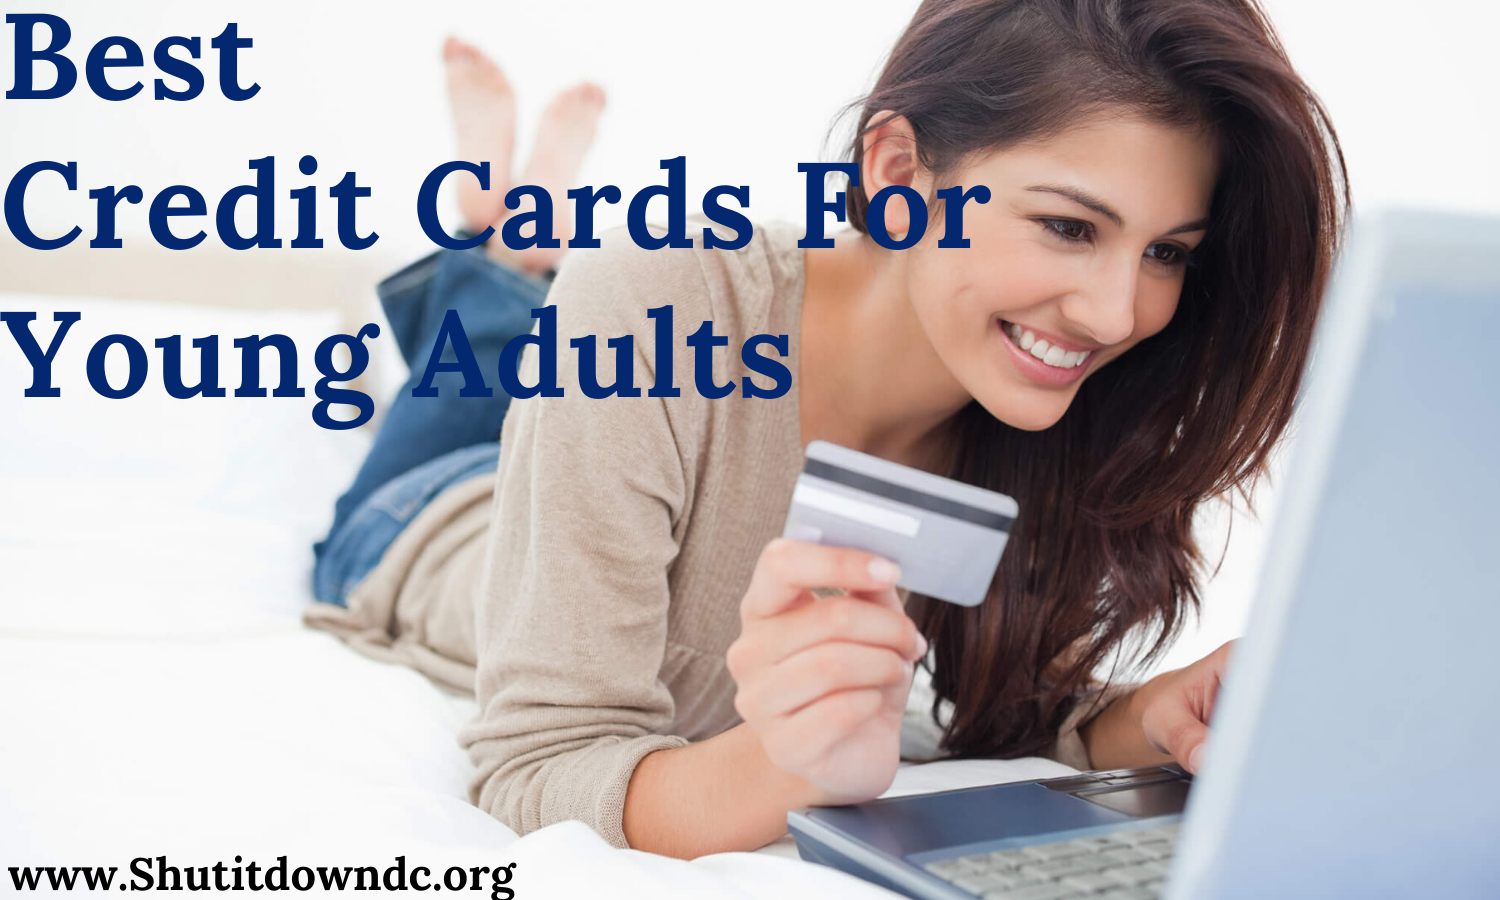 Best Credit cards for young adults in 2021